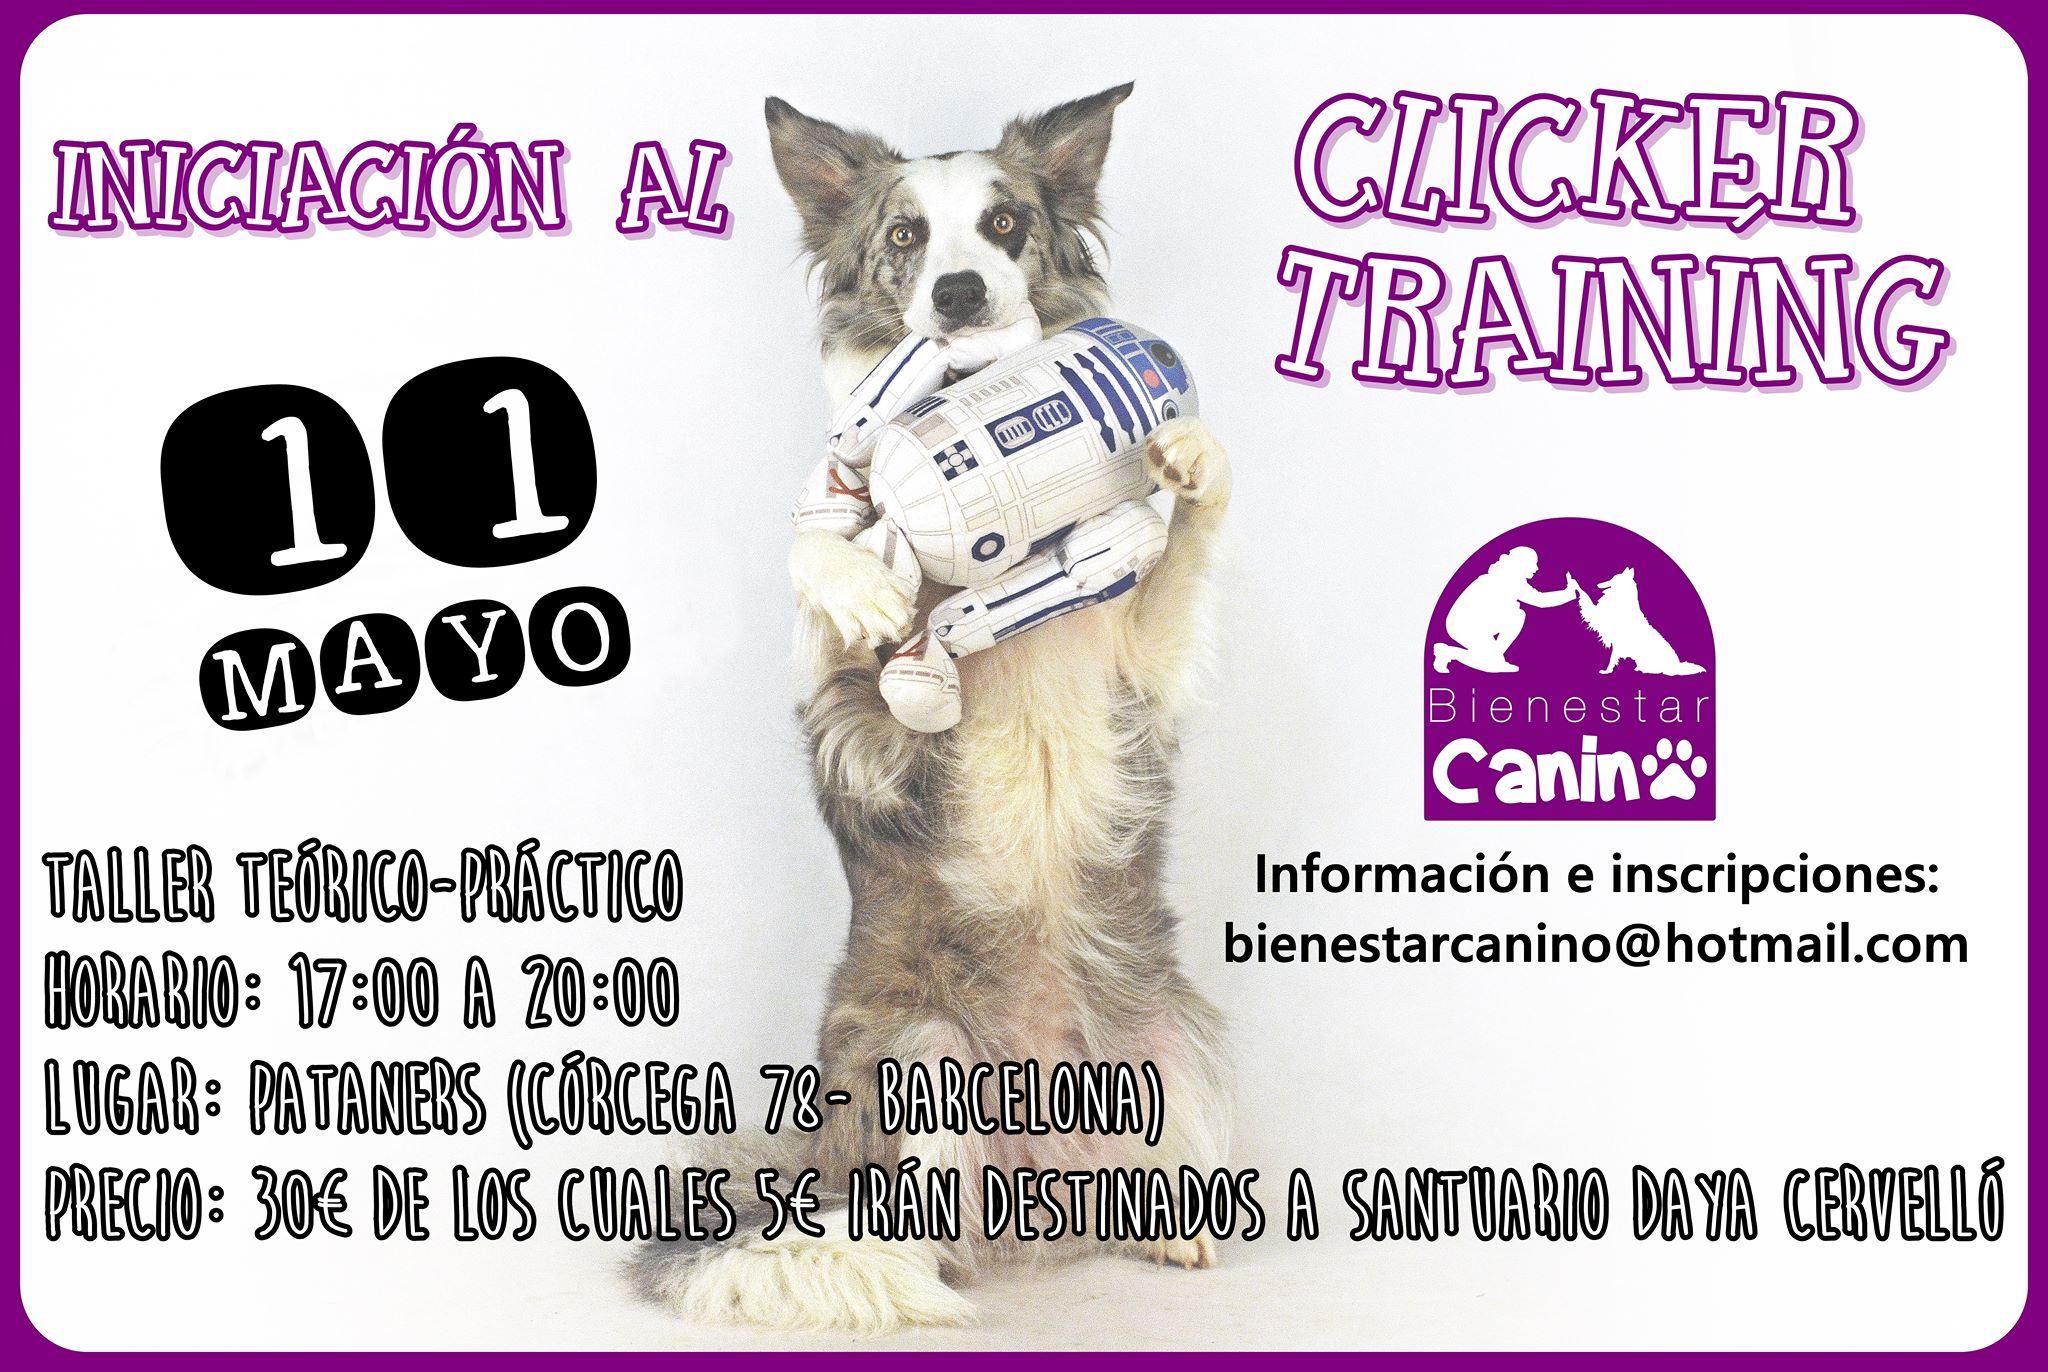 Iniciación al clicker training